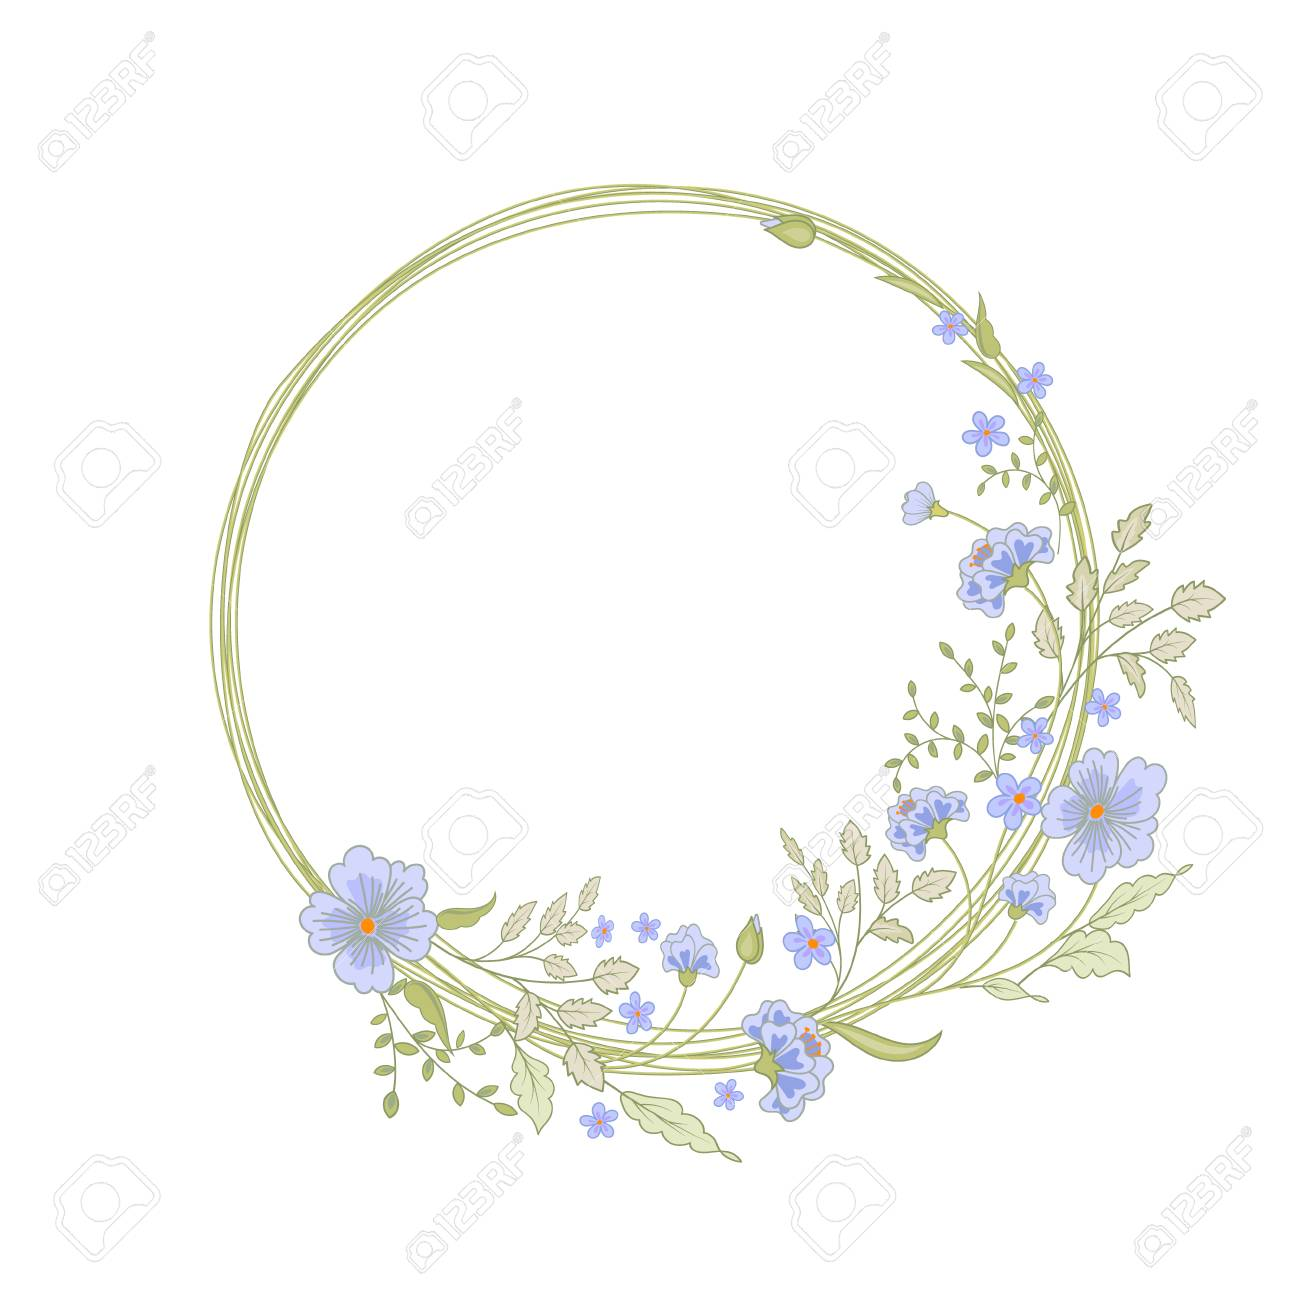 Round Floral Frame. Cute Flowers Arranged Un A Shape Of The Wreath ...